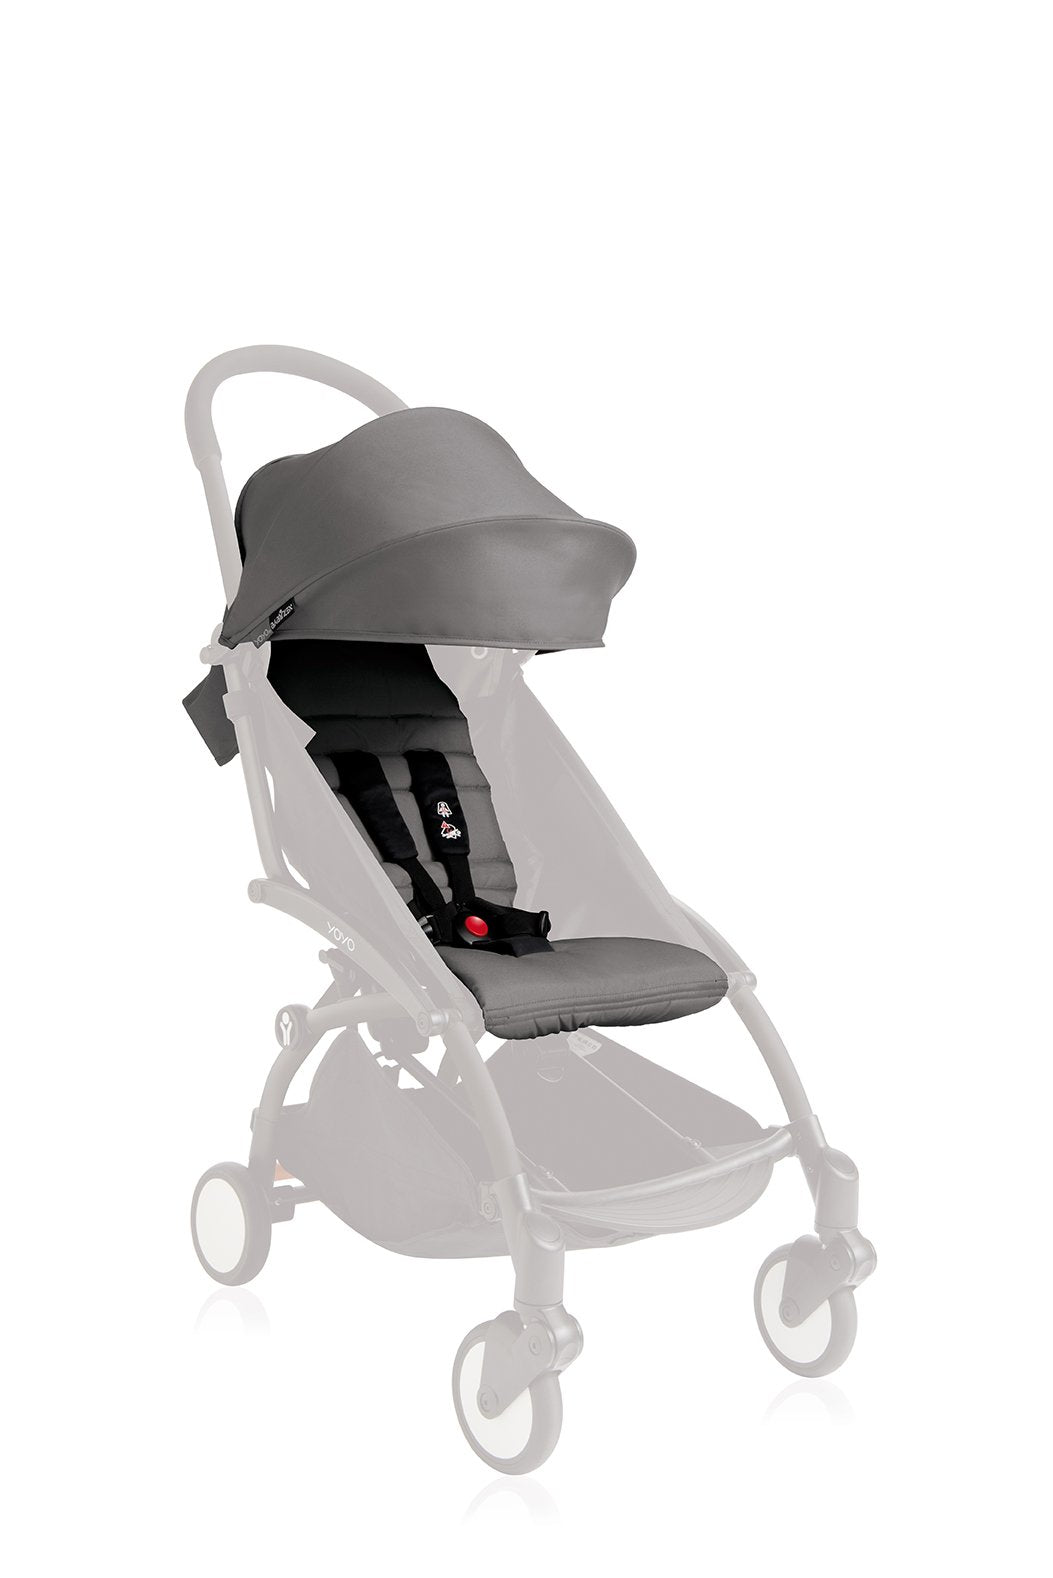 BABYZEN YOYO 6+ Seat Pad and Canopy Only - Grey